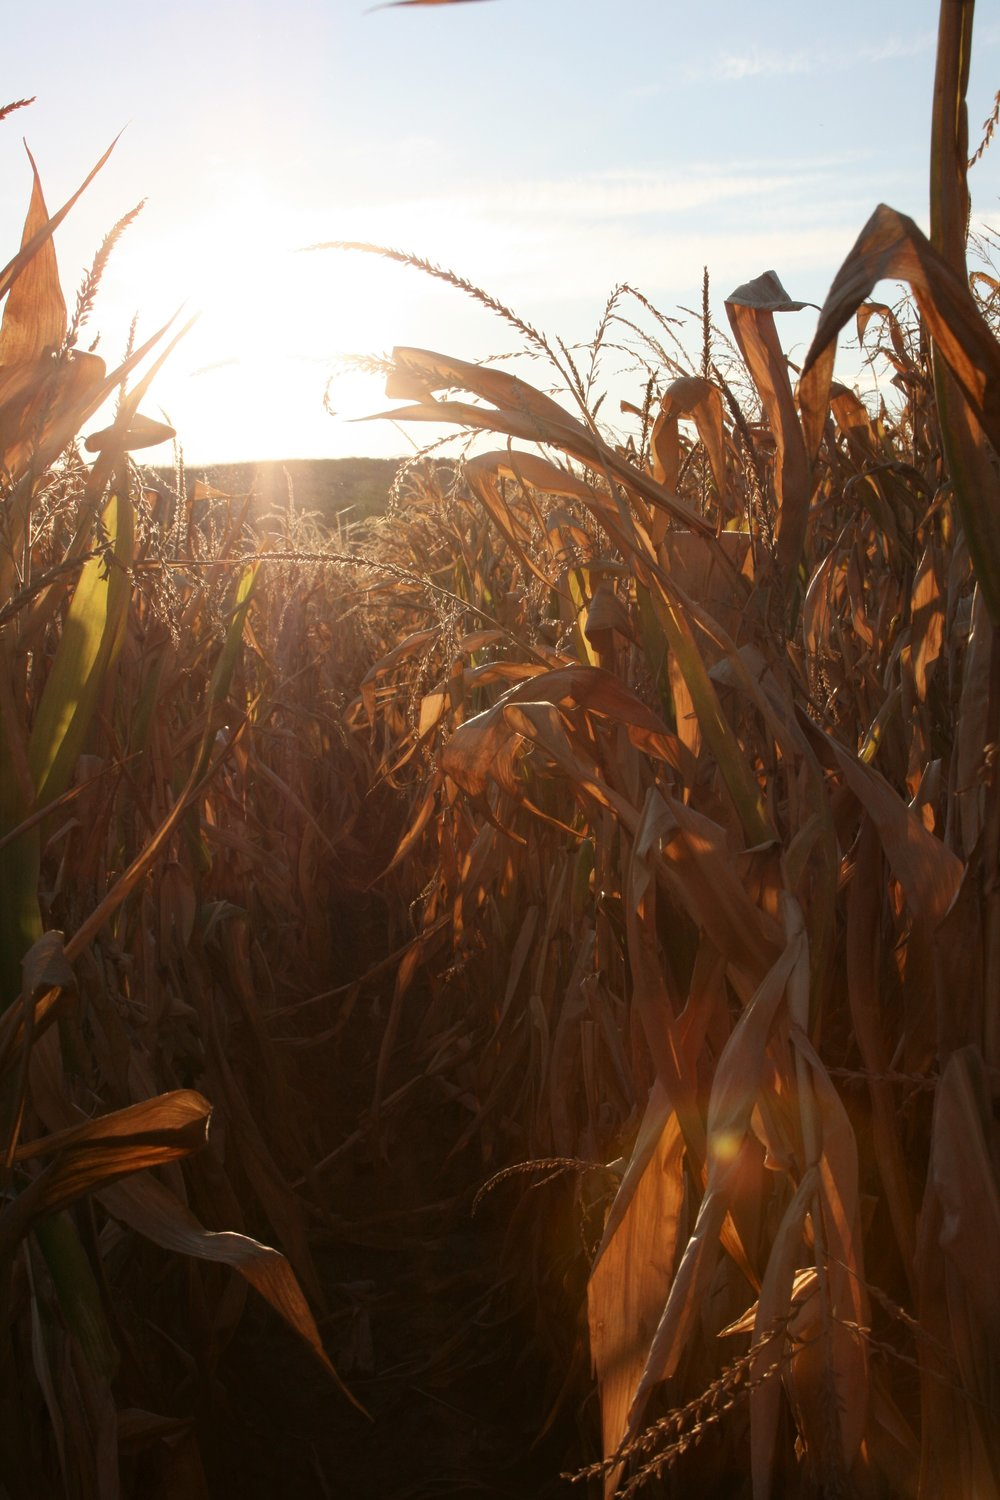 sunset in a corn field